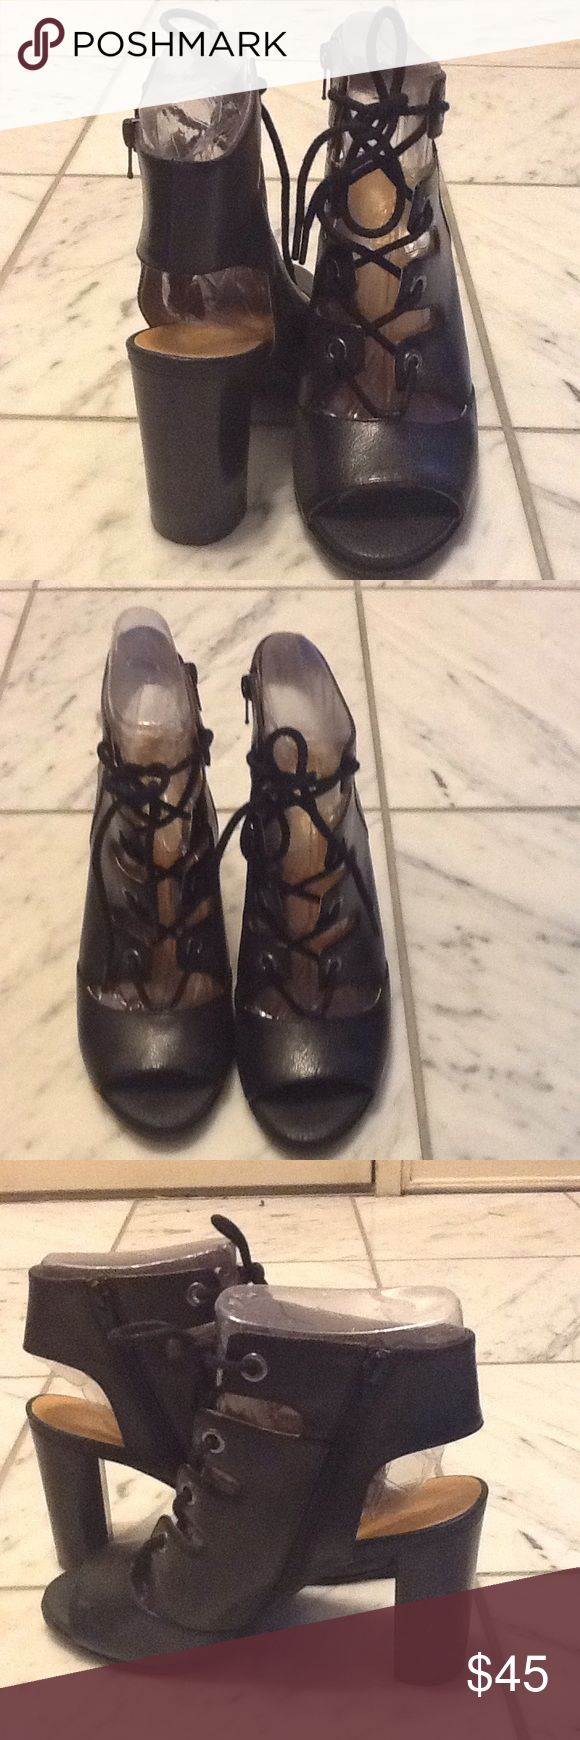 Nine West Black Lace Up Shoes Size 9 NINE WEST BLACK OPEN TOE LACE UP BOOT SIZE 9 PREOWNED GOOD CONDITION Nine West Shoes Ankle Boots & Booties